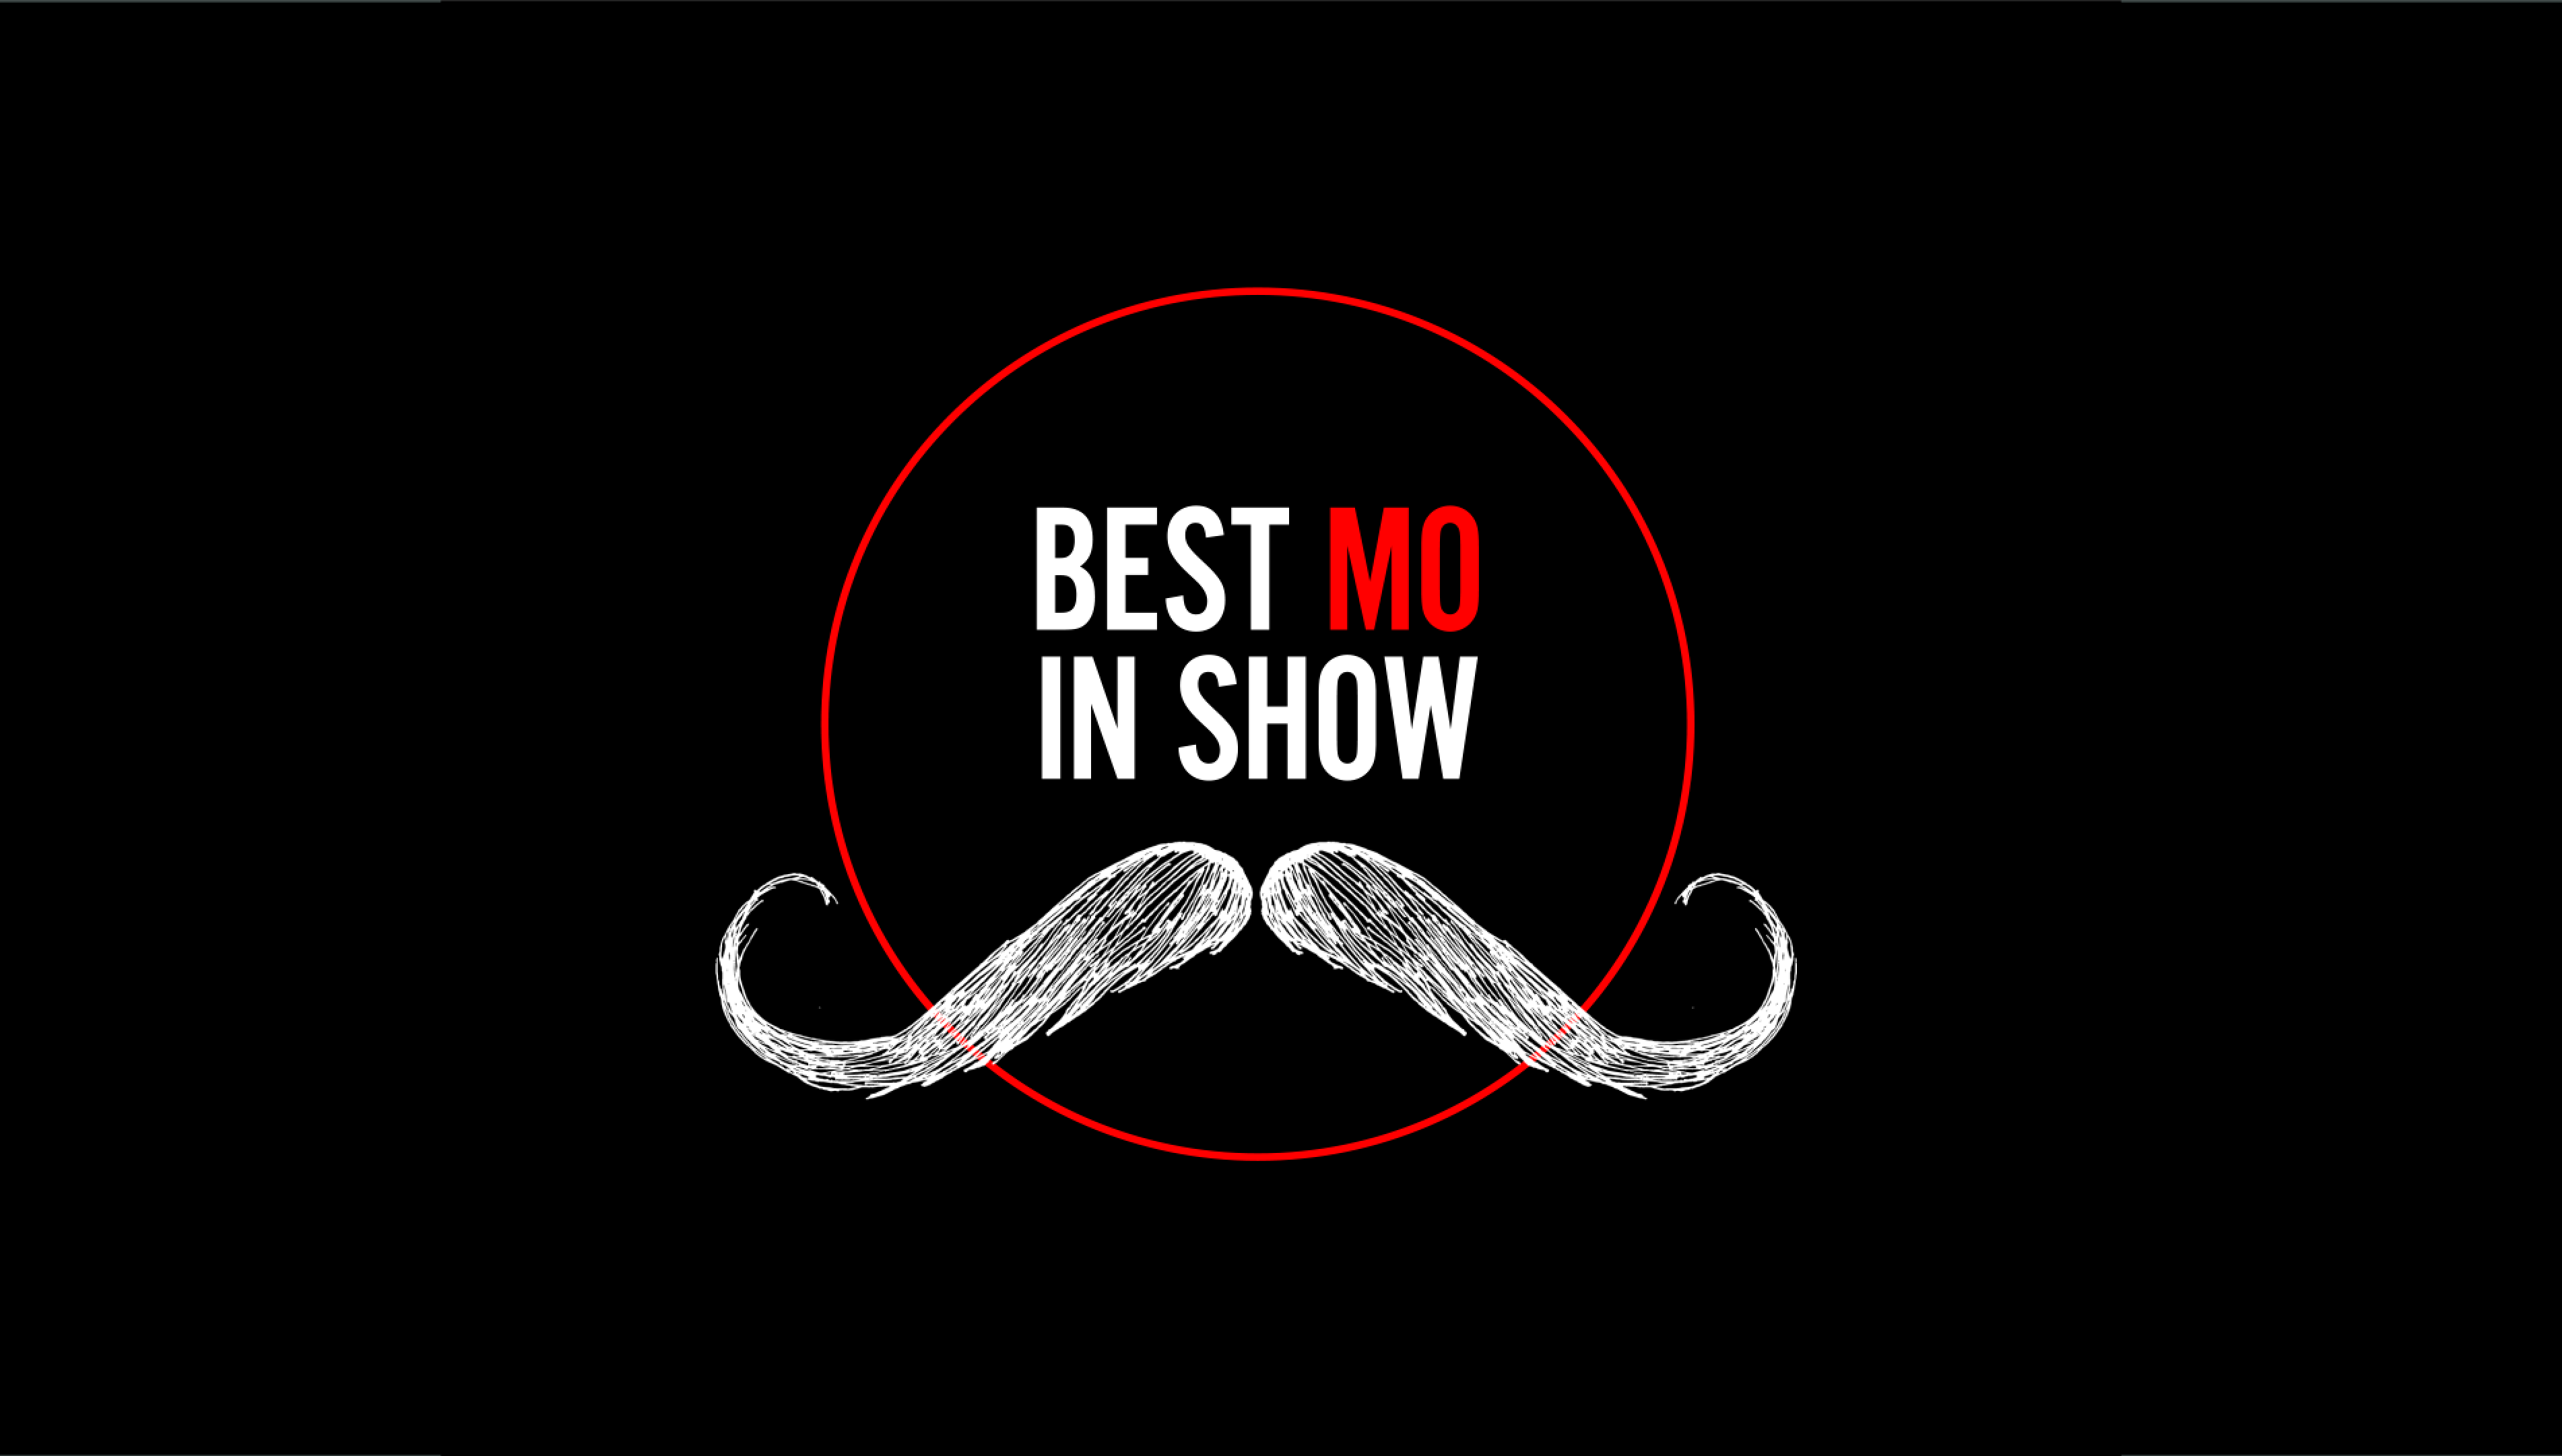 The Best Mo' in Show